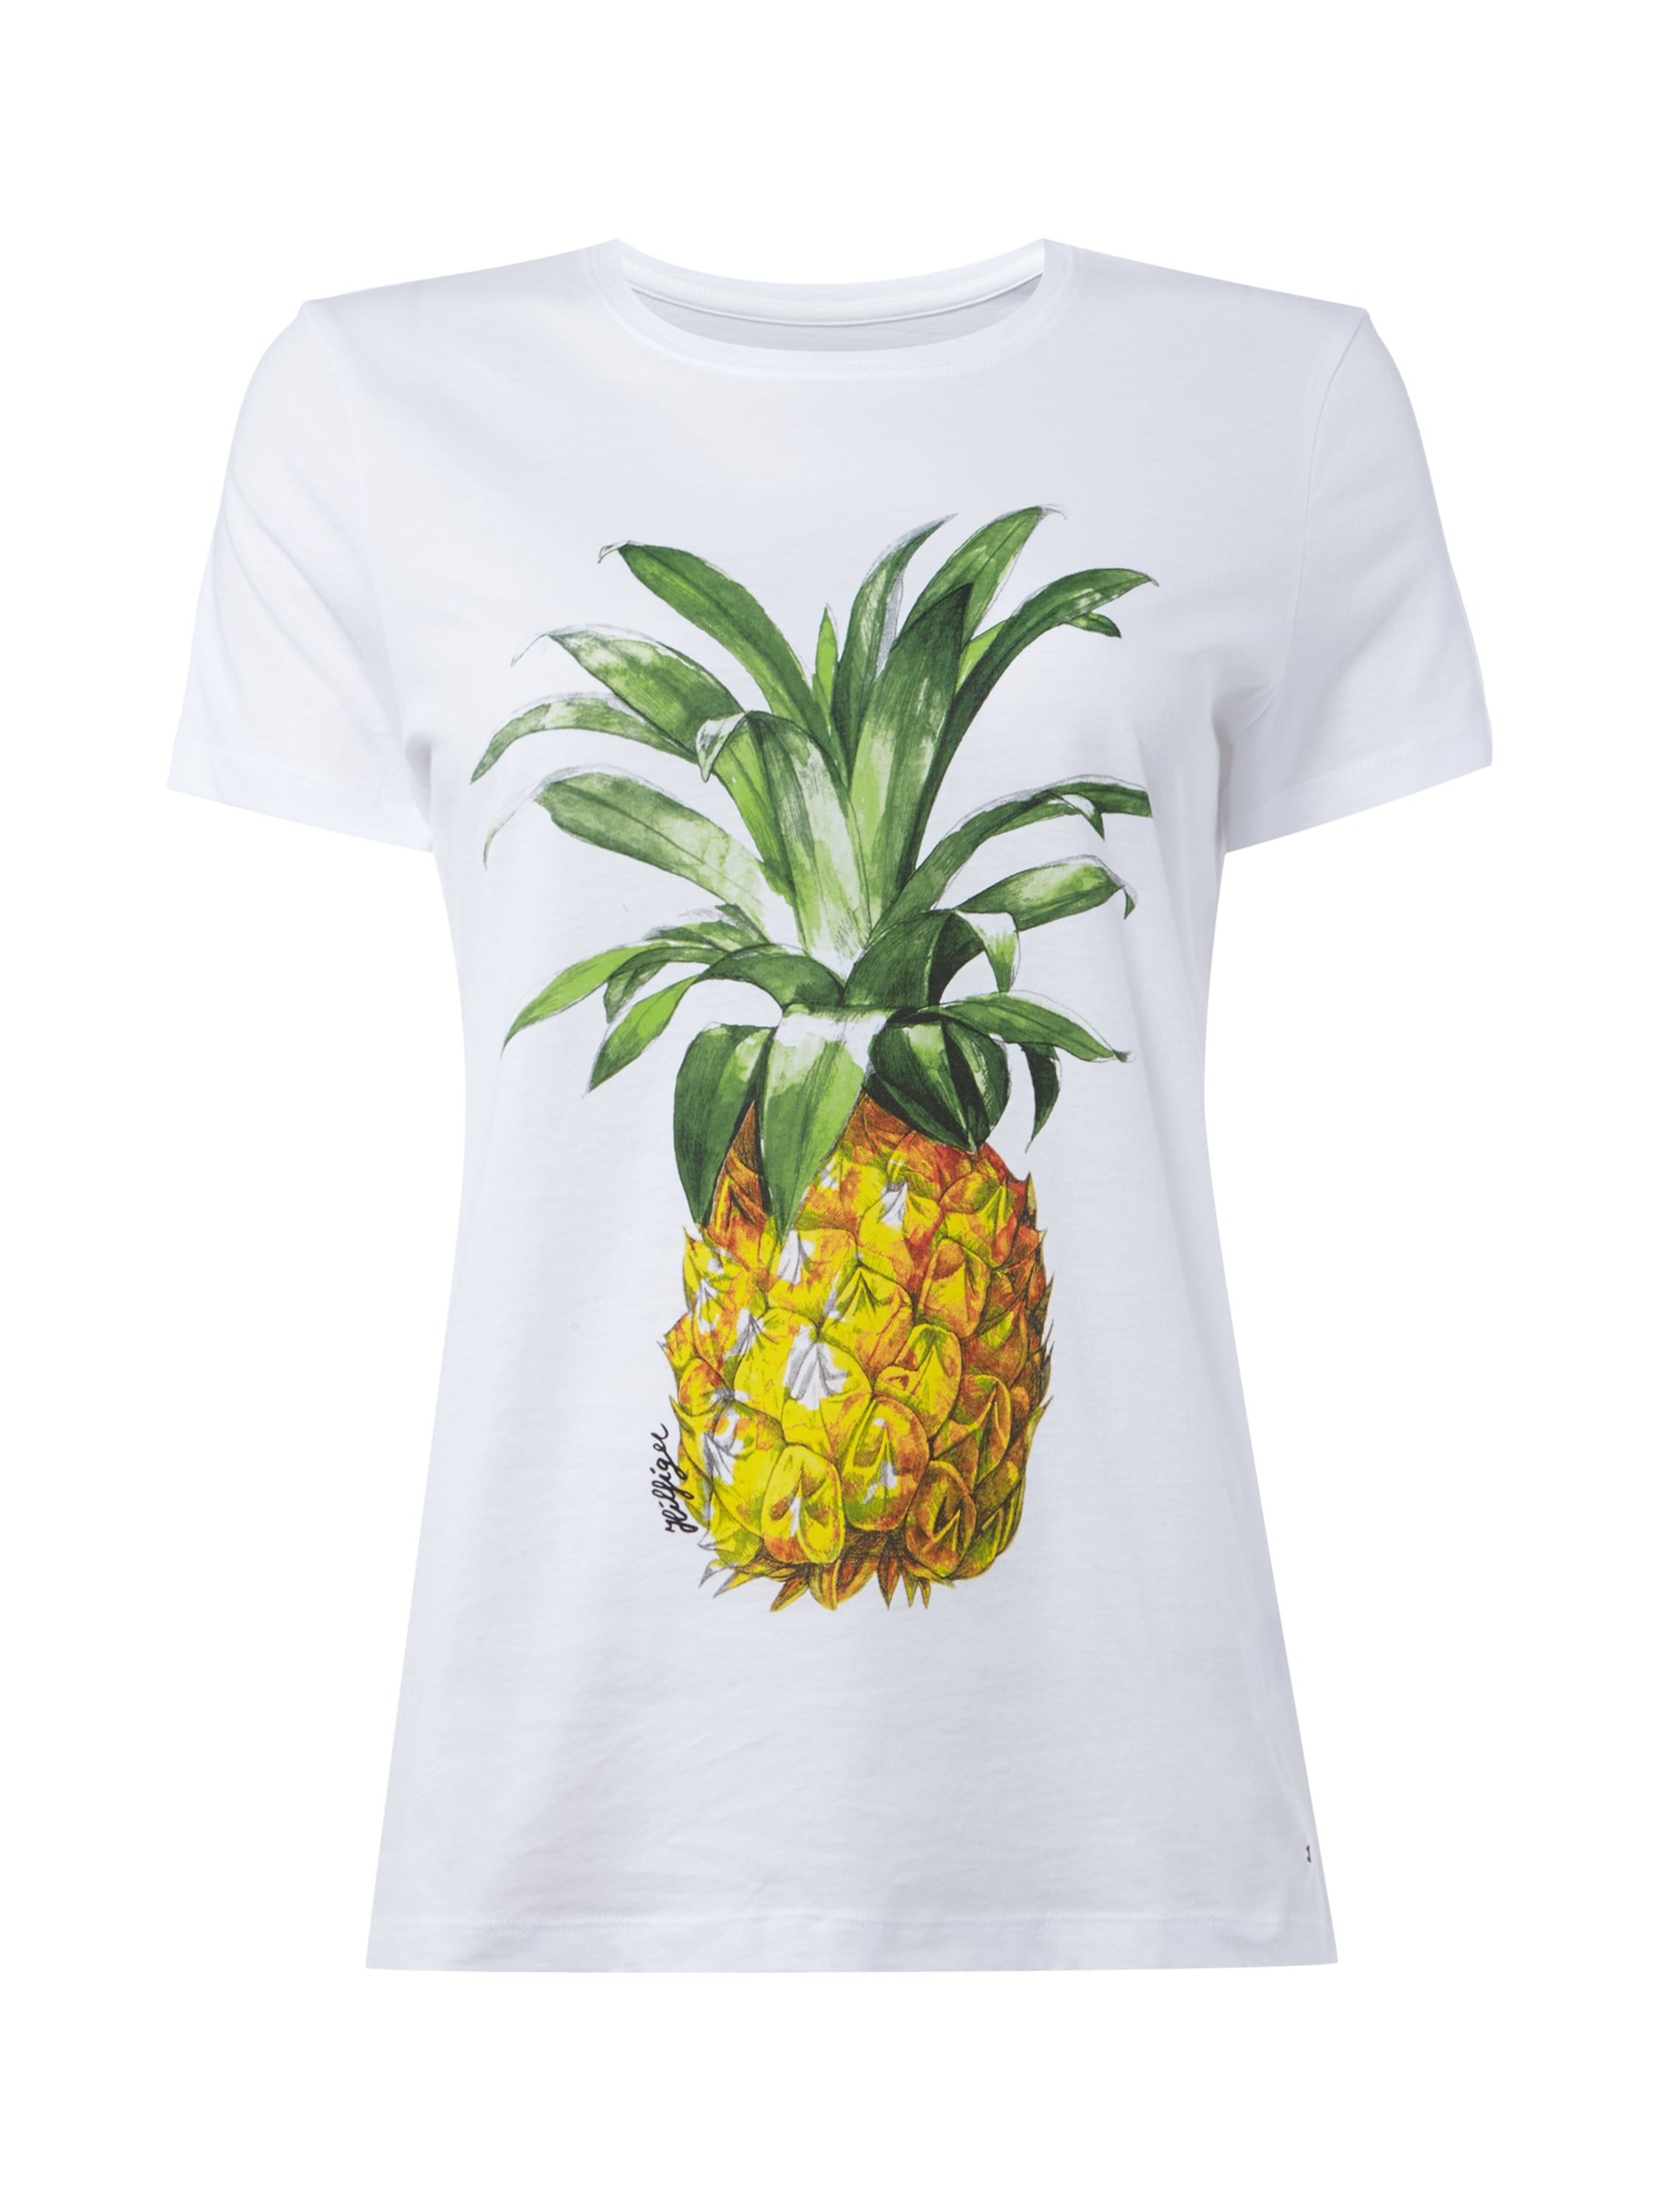 t shirt mit ananas print fashion id online shop. Black Bedroom Furniture Sets. Home Design Ideas